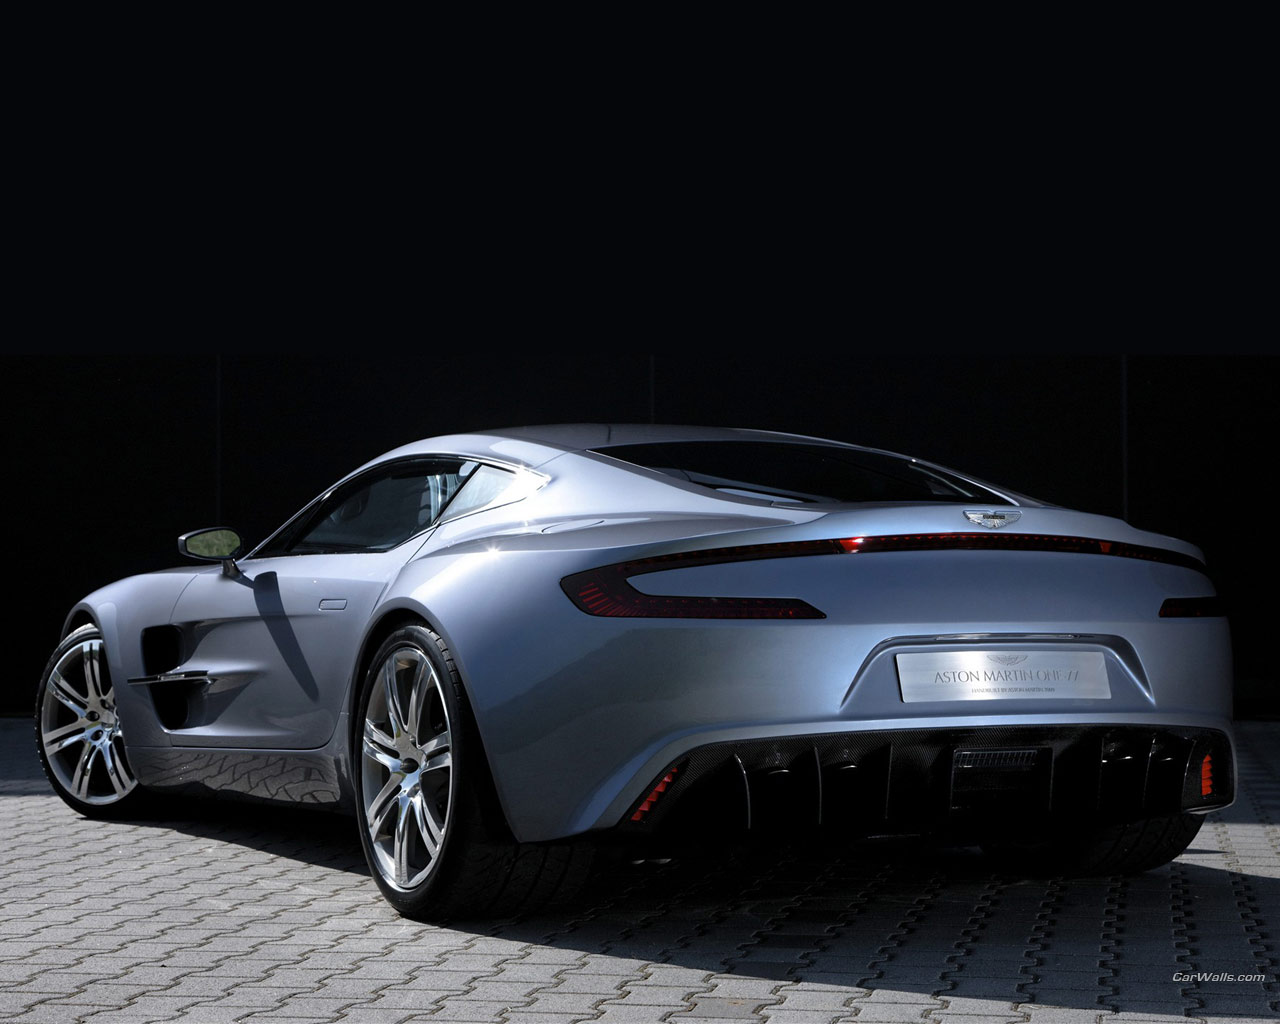 Photoshoot  Aston Martin One 77 further Luxury Car Brochure further The Aston Martin One 77 Experience Pictures further Aston Martin One 77 Car Wallpapers together with 1. on aston martin one 77